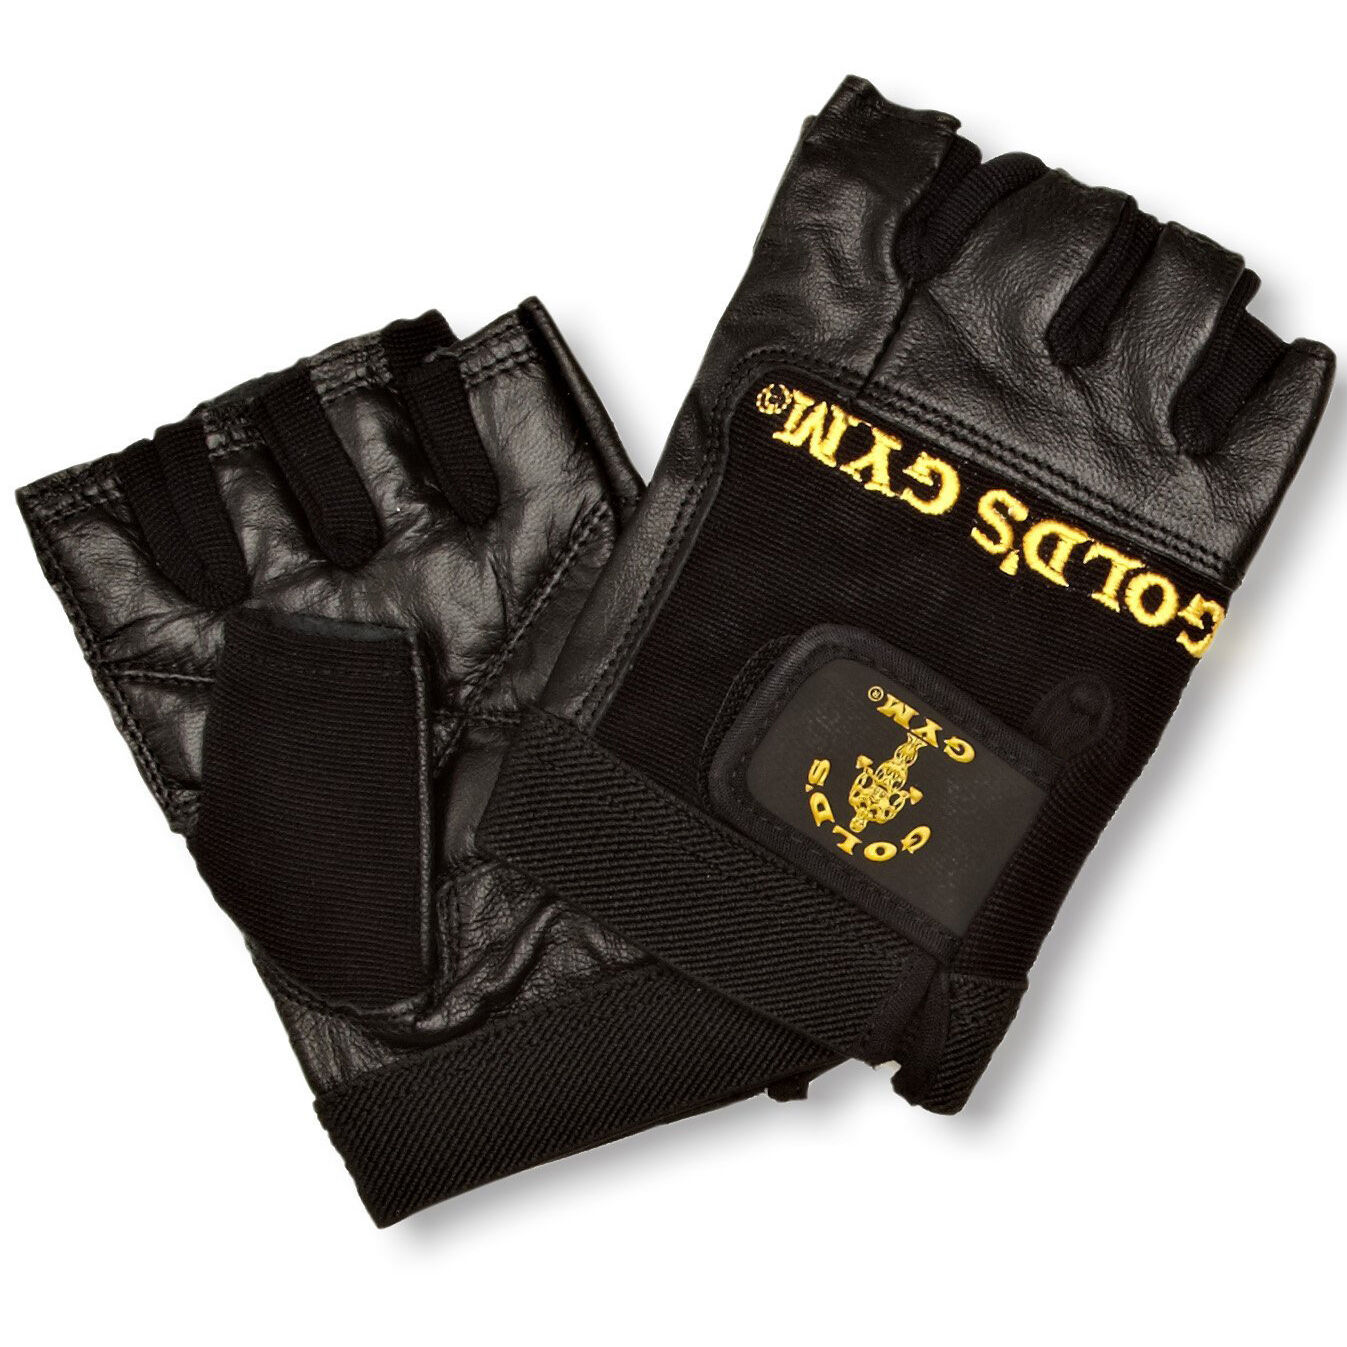 ProElite Gym Max Lift Leather Weight Lifting Gloves Body Building Exercise Train